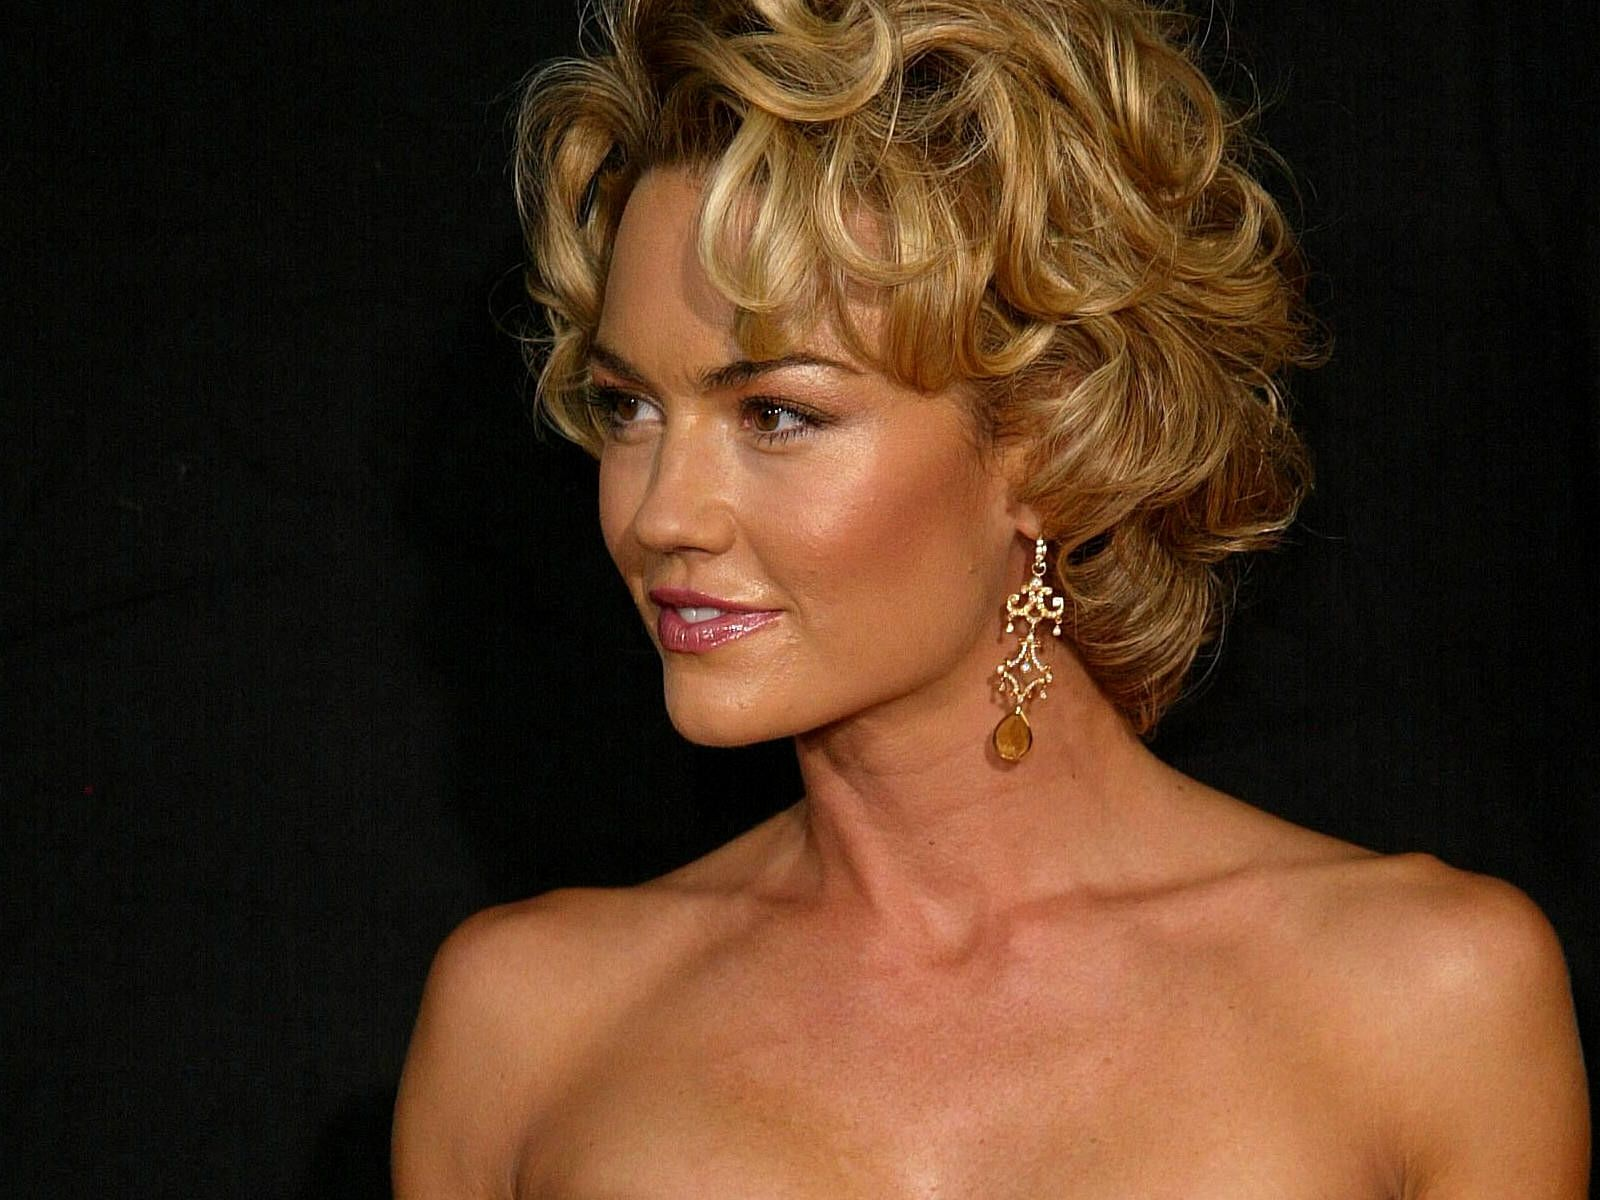 kelly carlson wikikelly carlson 2016, kelly carlson wdw, kelly carlson imdb, kelly carlson photo, kelly carlson instagram, kelly carlson official instagram, kelly carlson, kelly carlson 2015, kelly carlson husband, kelly carlson twitter, kelly carlson wiki, kelly carlson married, kelly carlson net worth